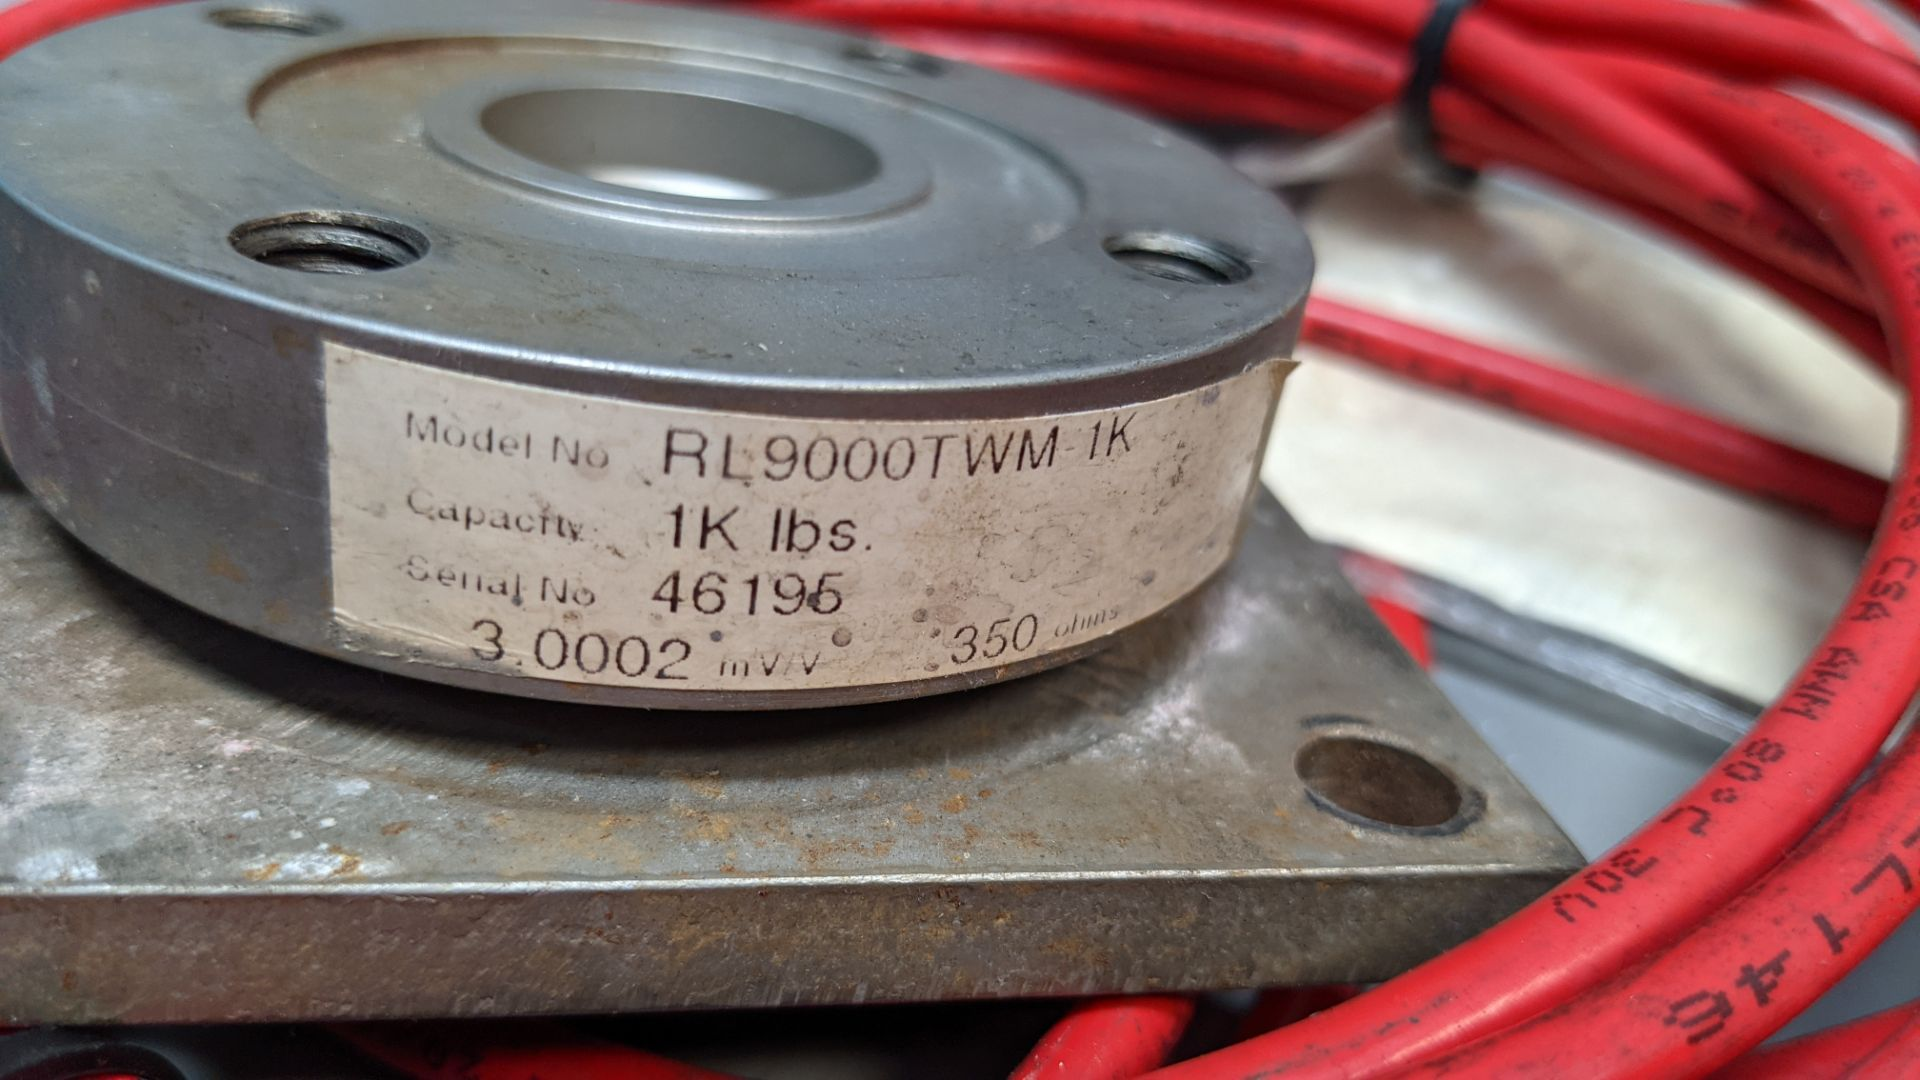 LOT OF RICE LAKE LOAD CELLS - Image 5 of 8